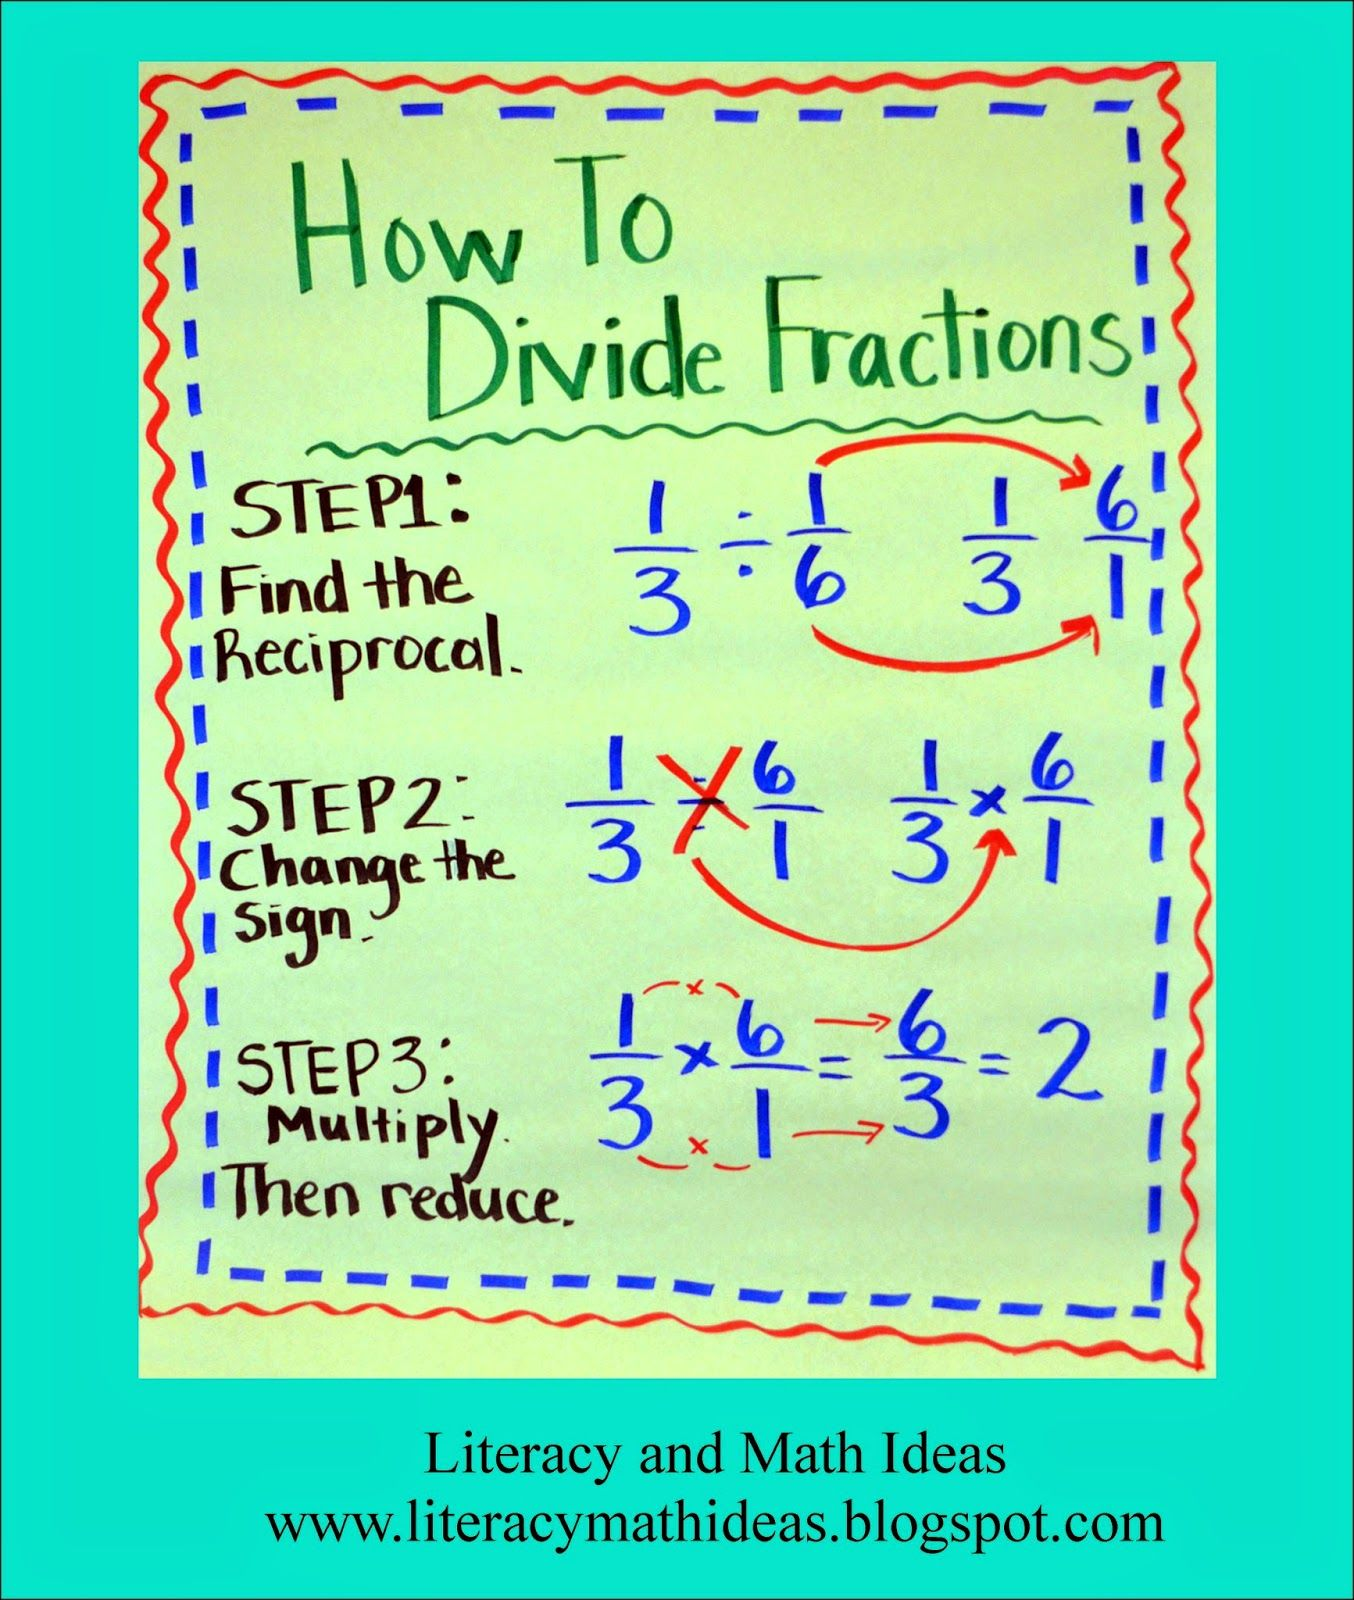 How To Divide Fractions Just Make Sure You Explain How